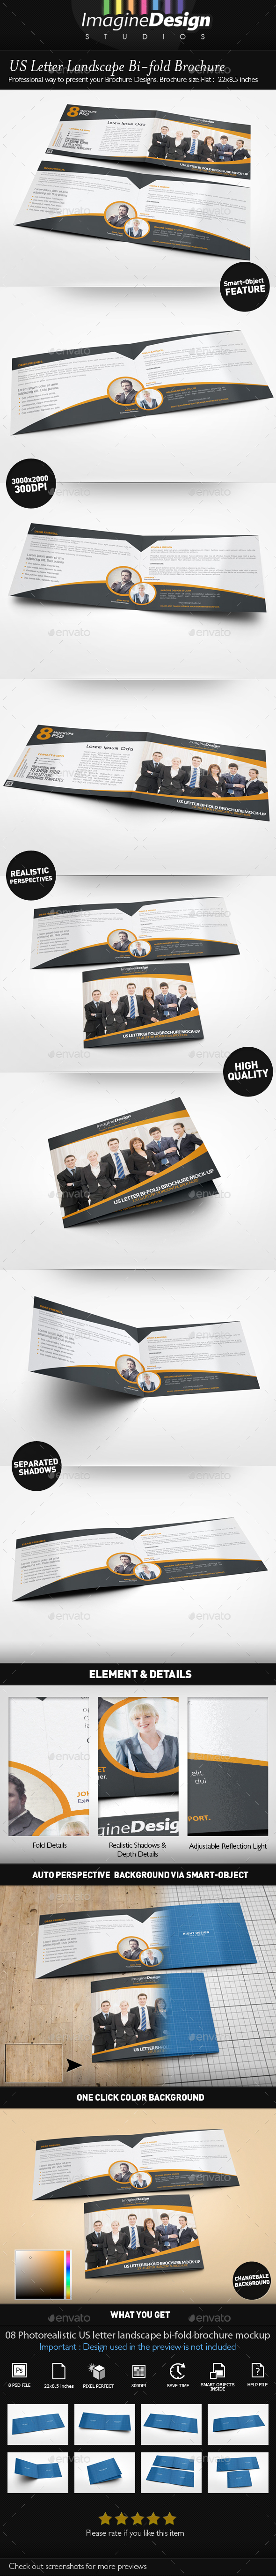 US Letter Landscape Bi-fold Brochure Mock-Up - Brochures Print